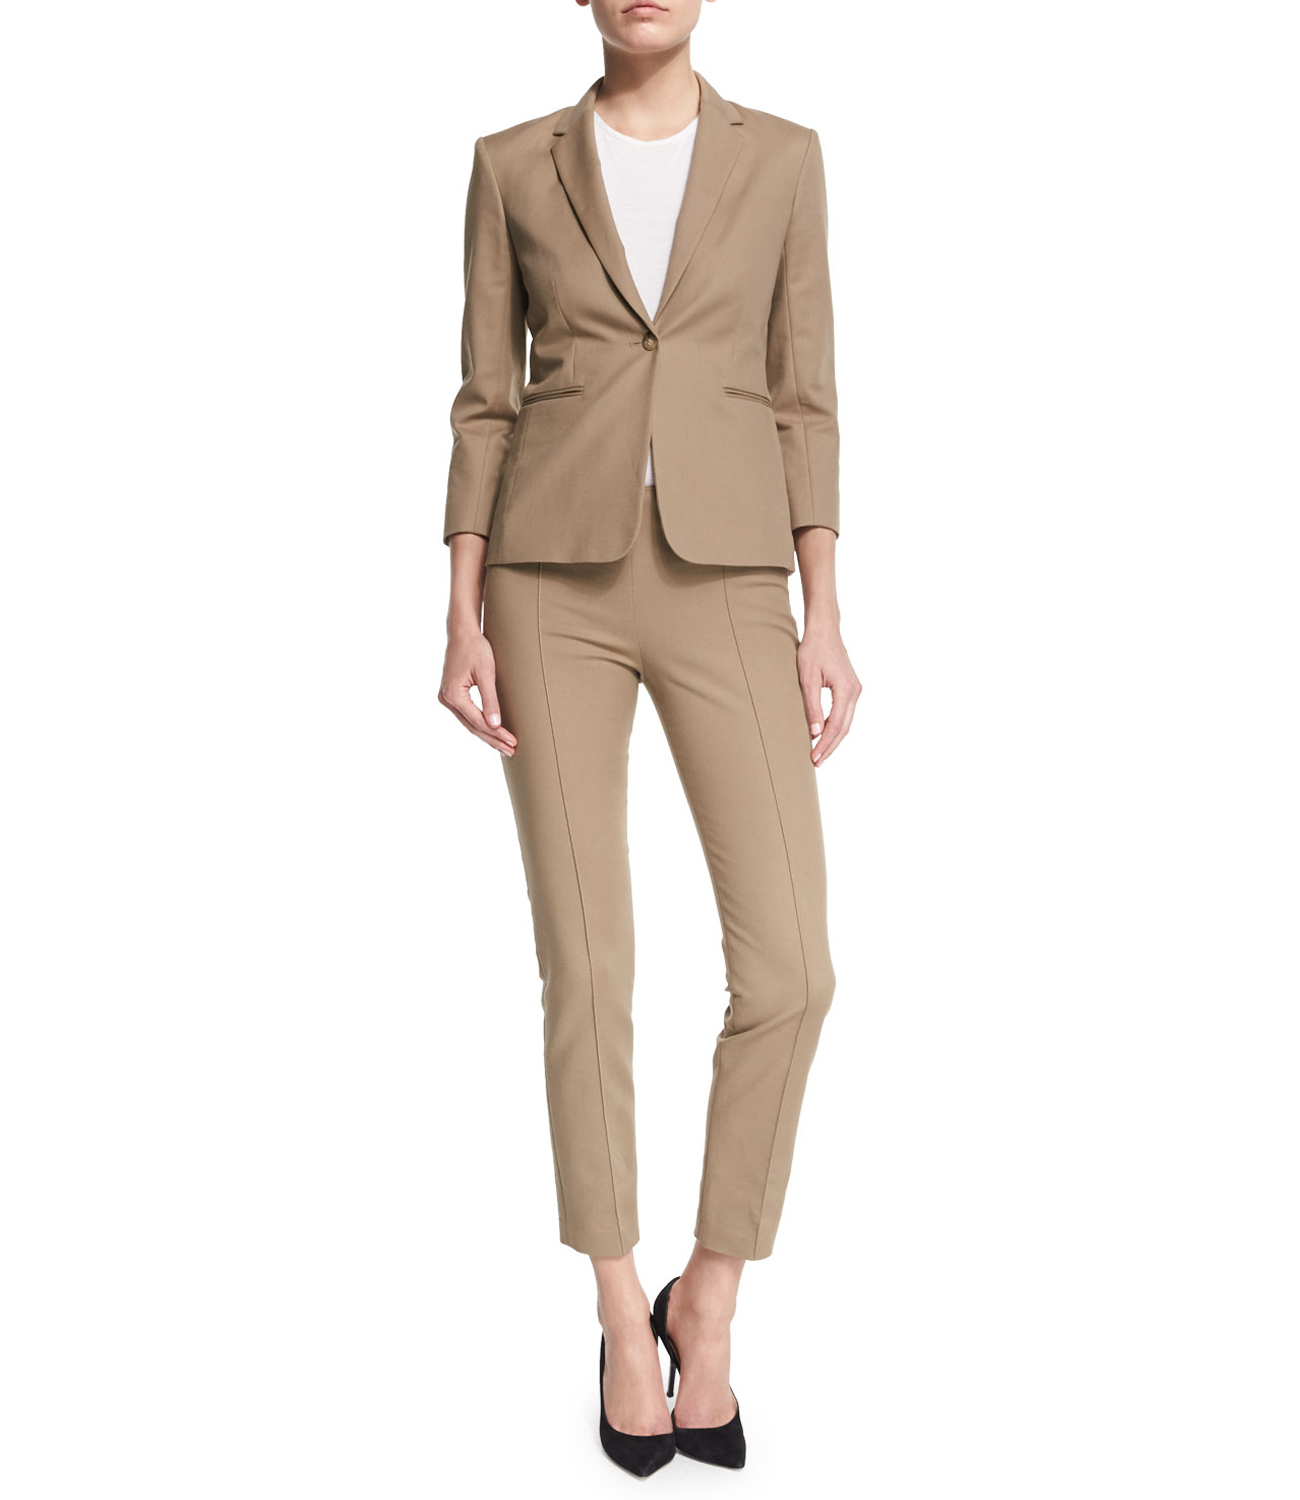 CROPPED SUIT